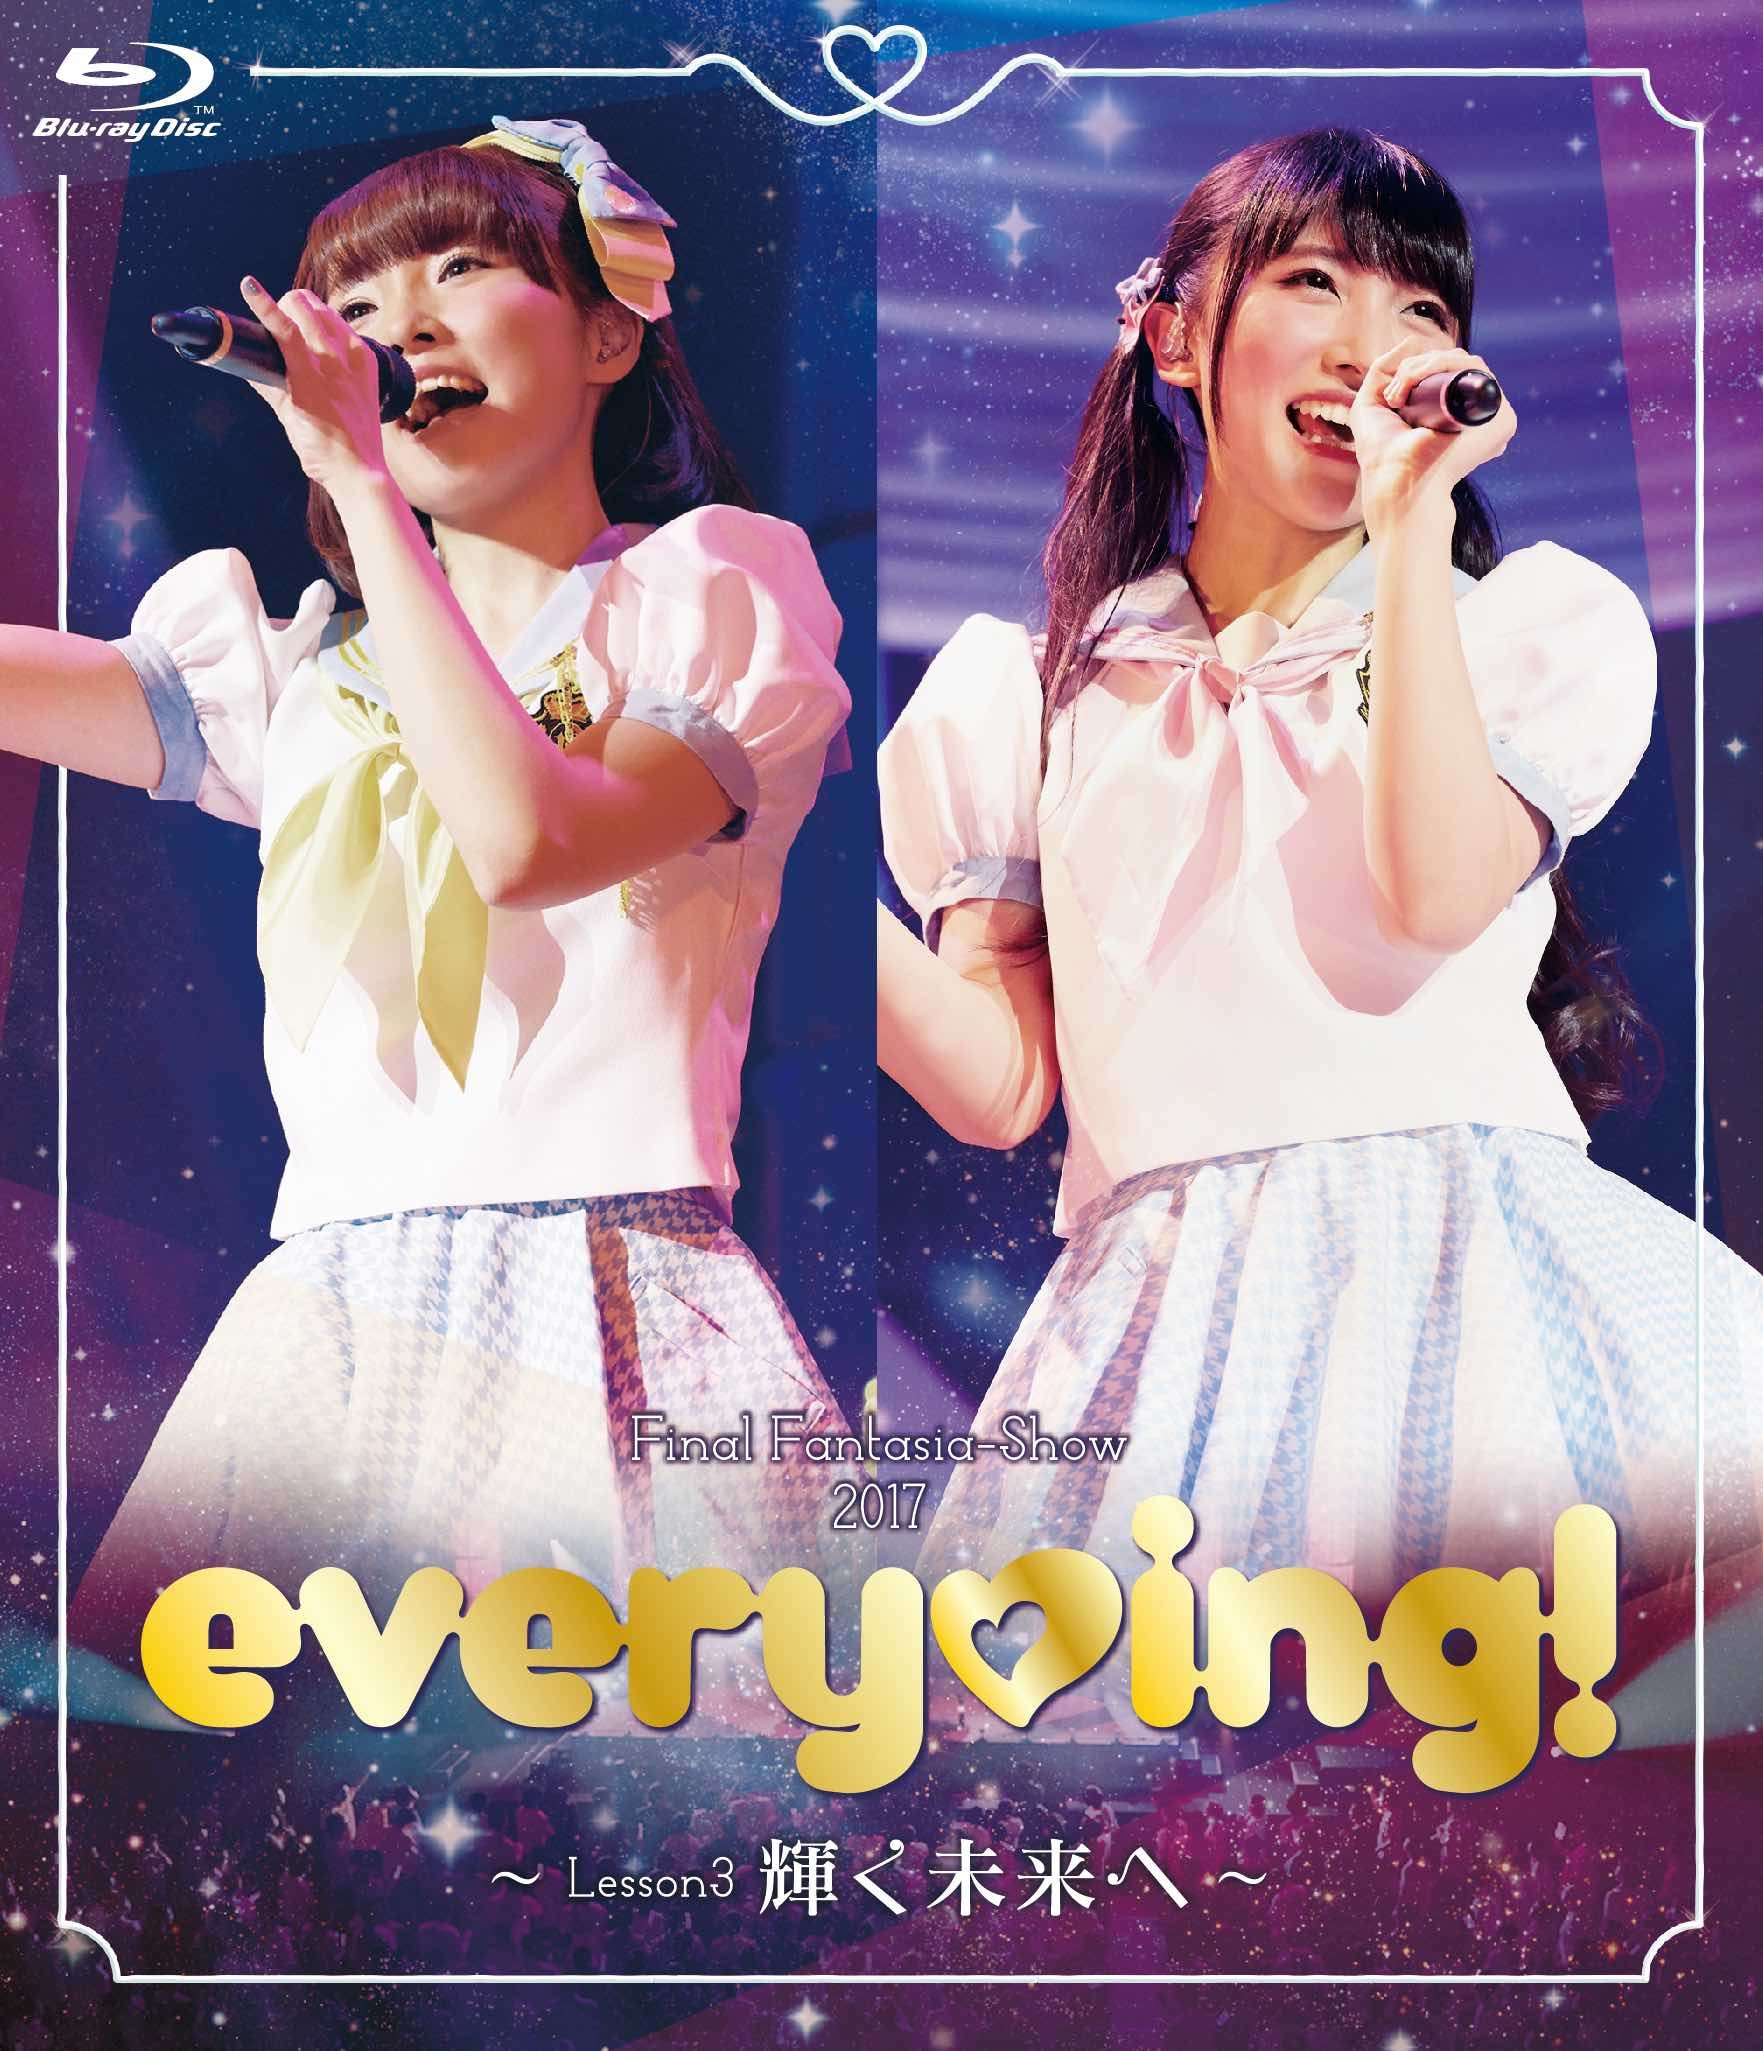 every♥ing!Final Fantasia-Show 2017 ~Lesson3 輝く未来へ~ LIVE Blu-ray〜